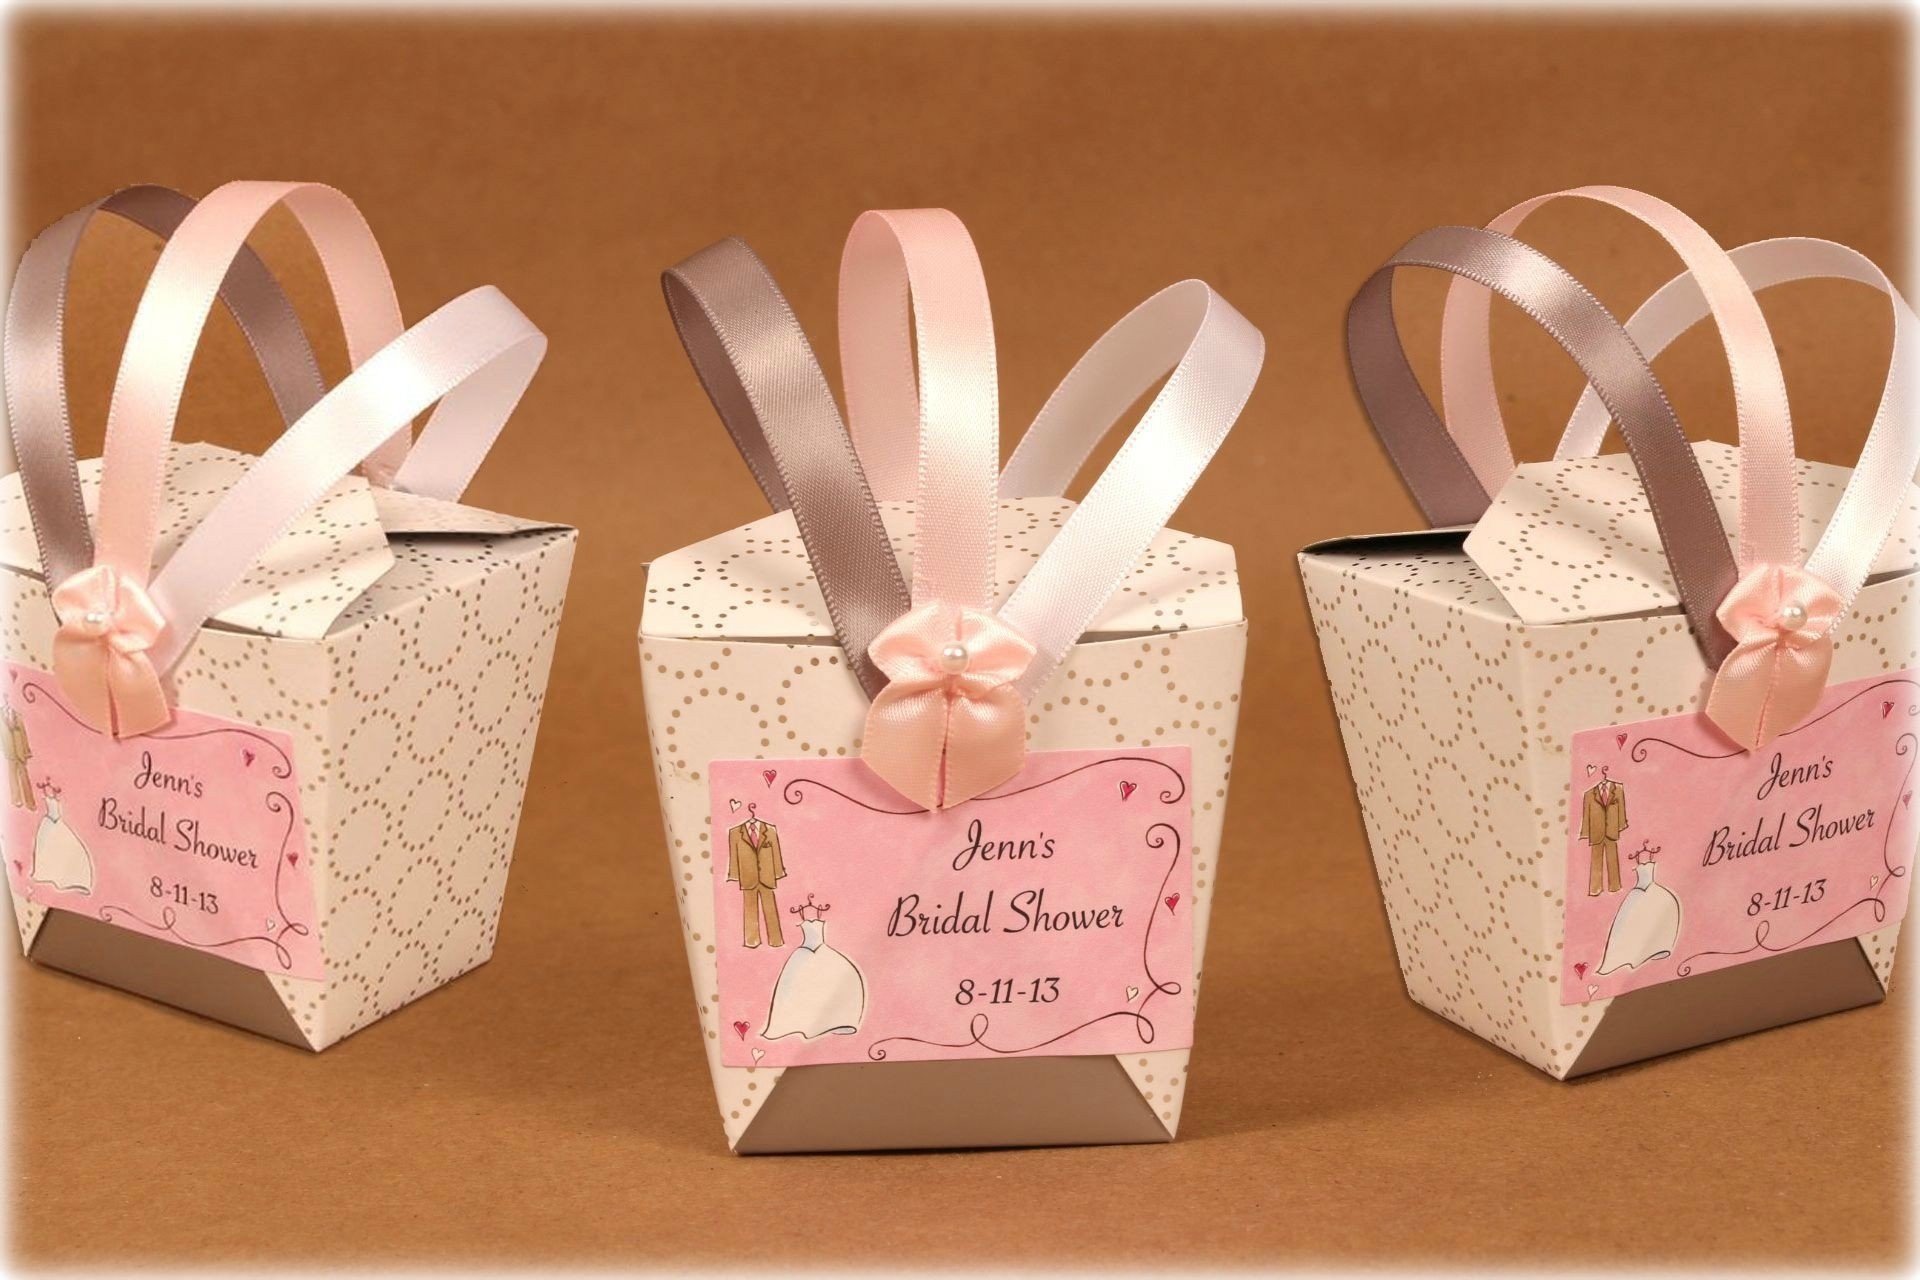 10 Fabulous Bridal Shower Party Favors Ideas bridal shower favor chinese takeout style boxes 1